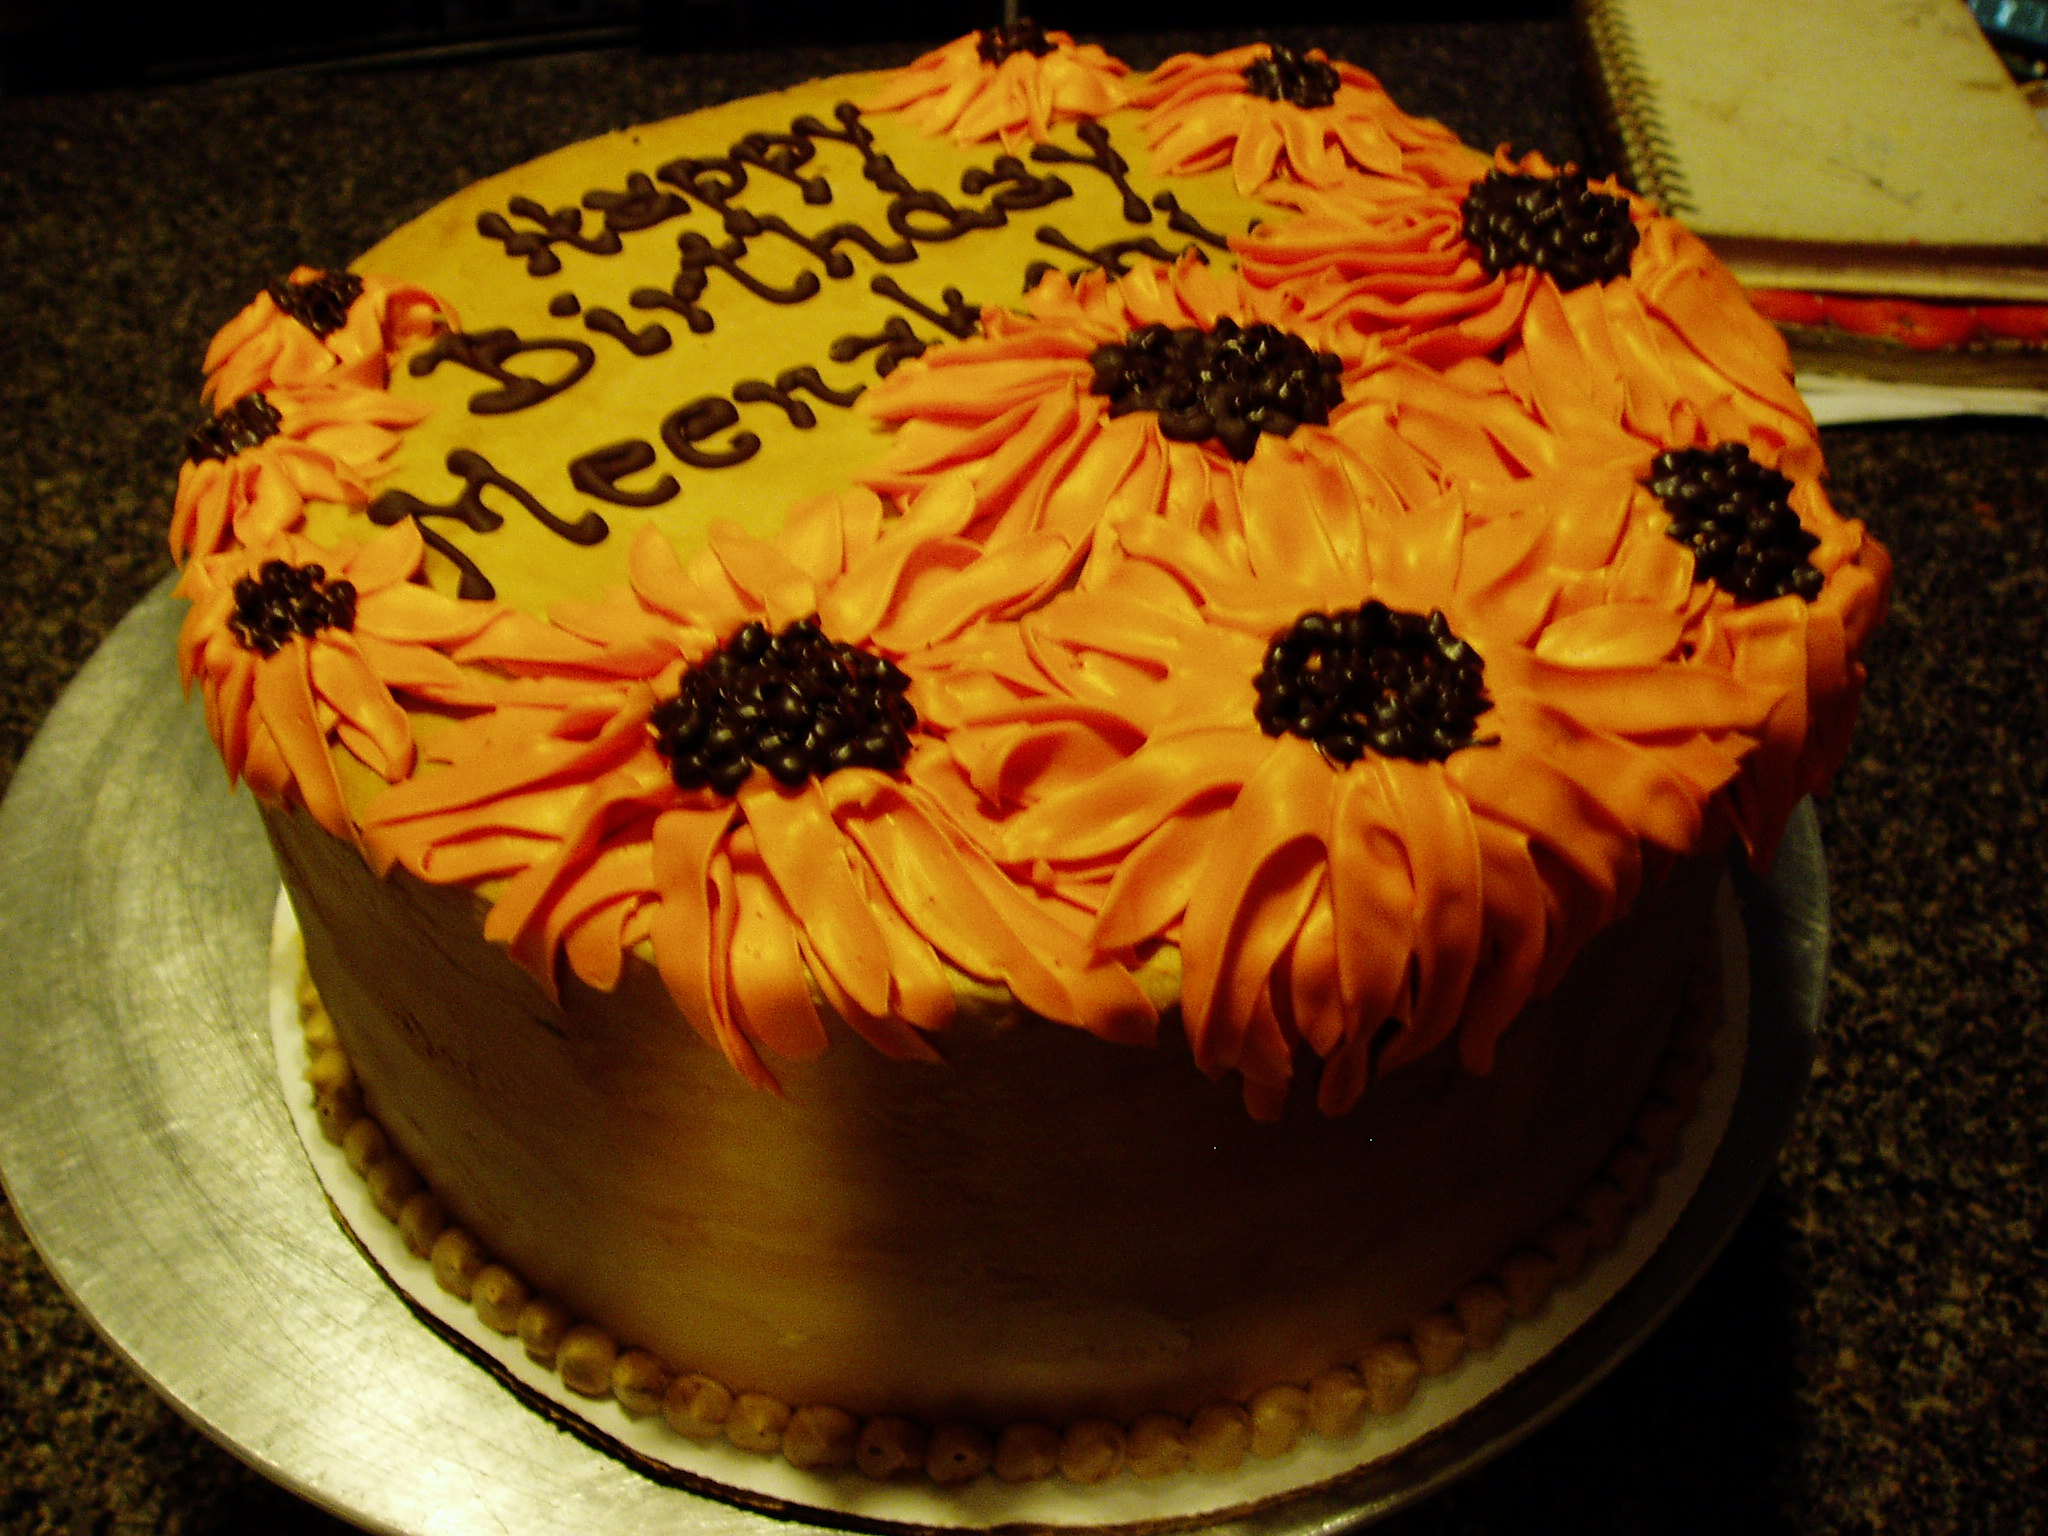 Sunflower Birthday Cake Sunflower Birthday Cake Cakes Pastry Shop Cocoa Bakery Cafe